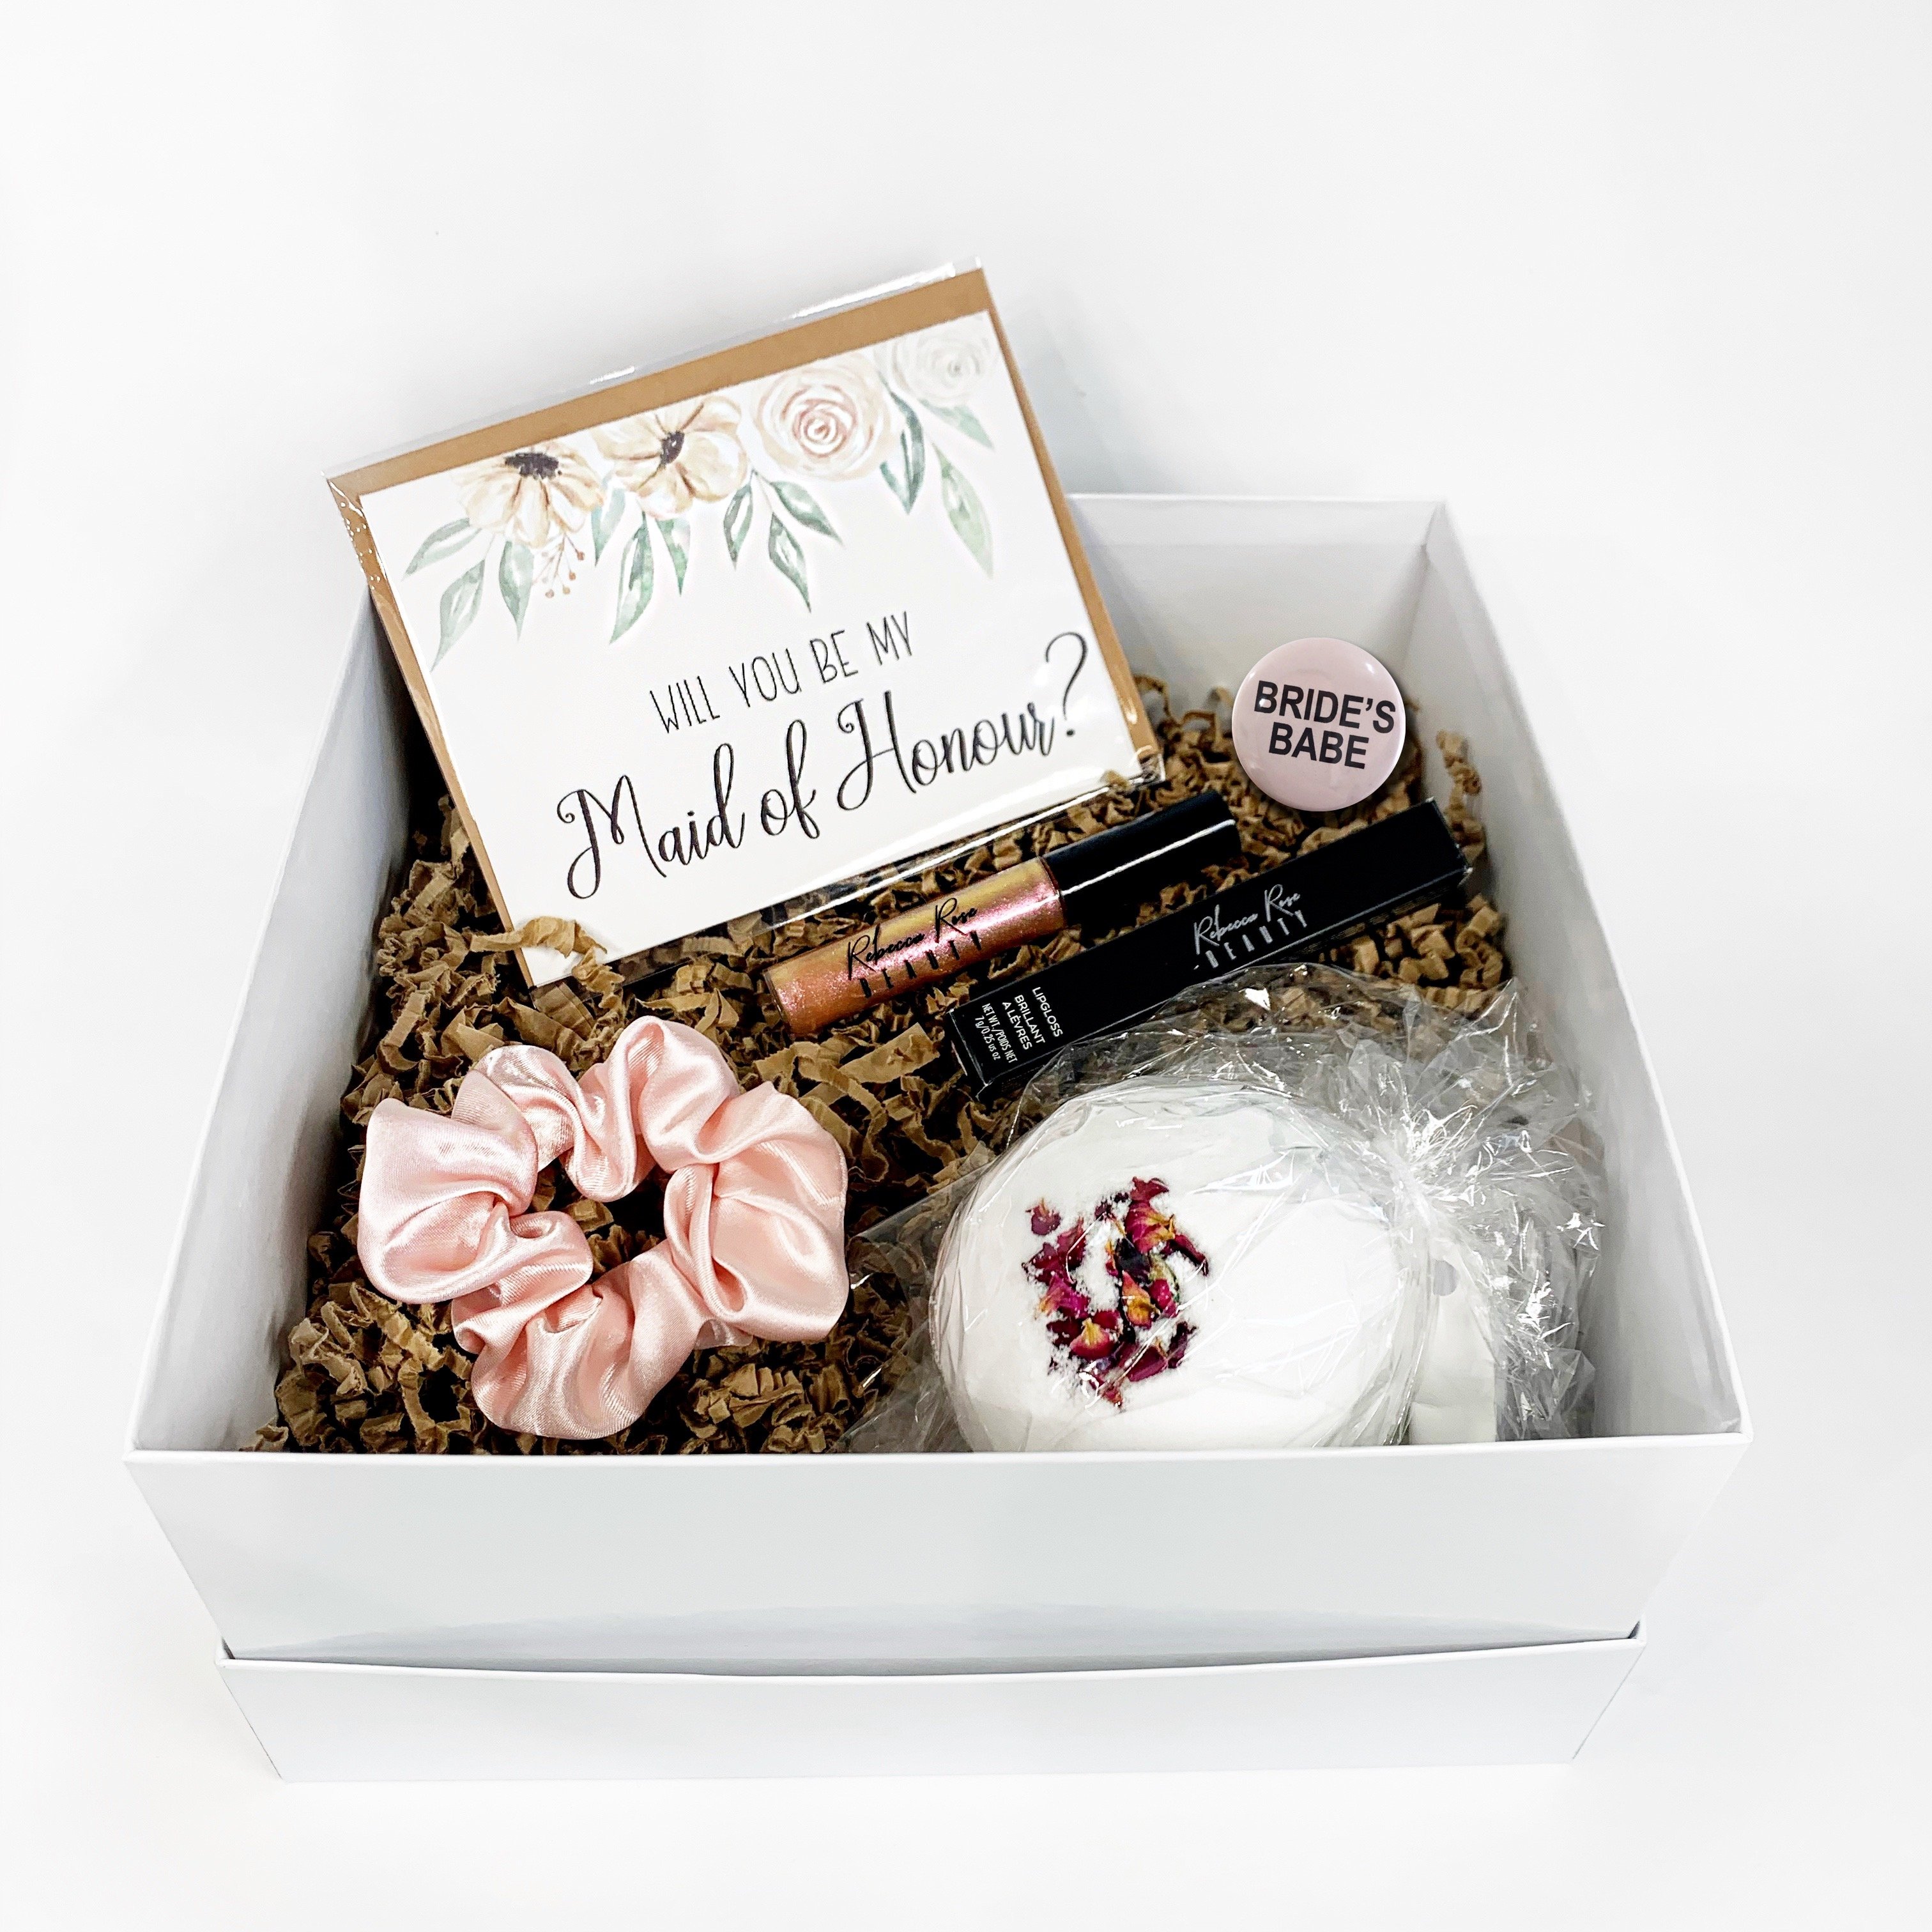 Maid of Honour Proposal Box